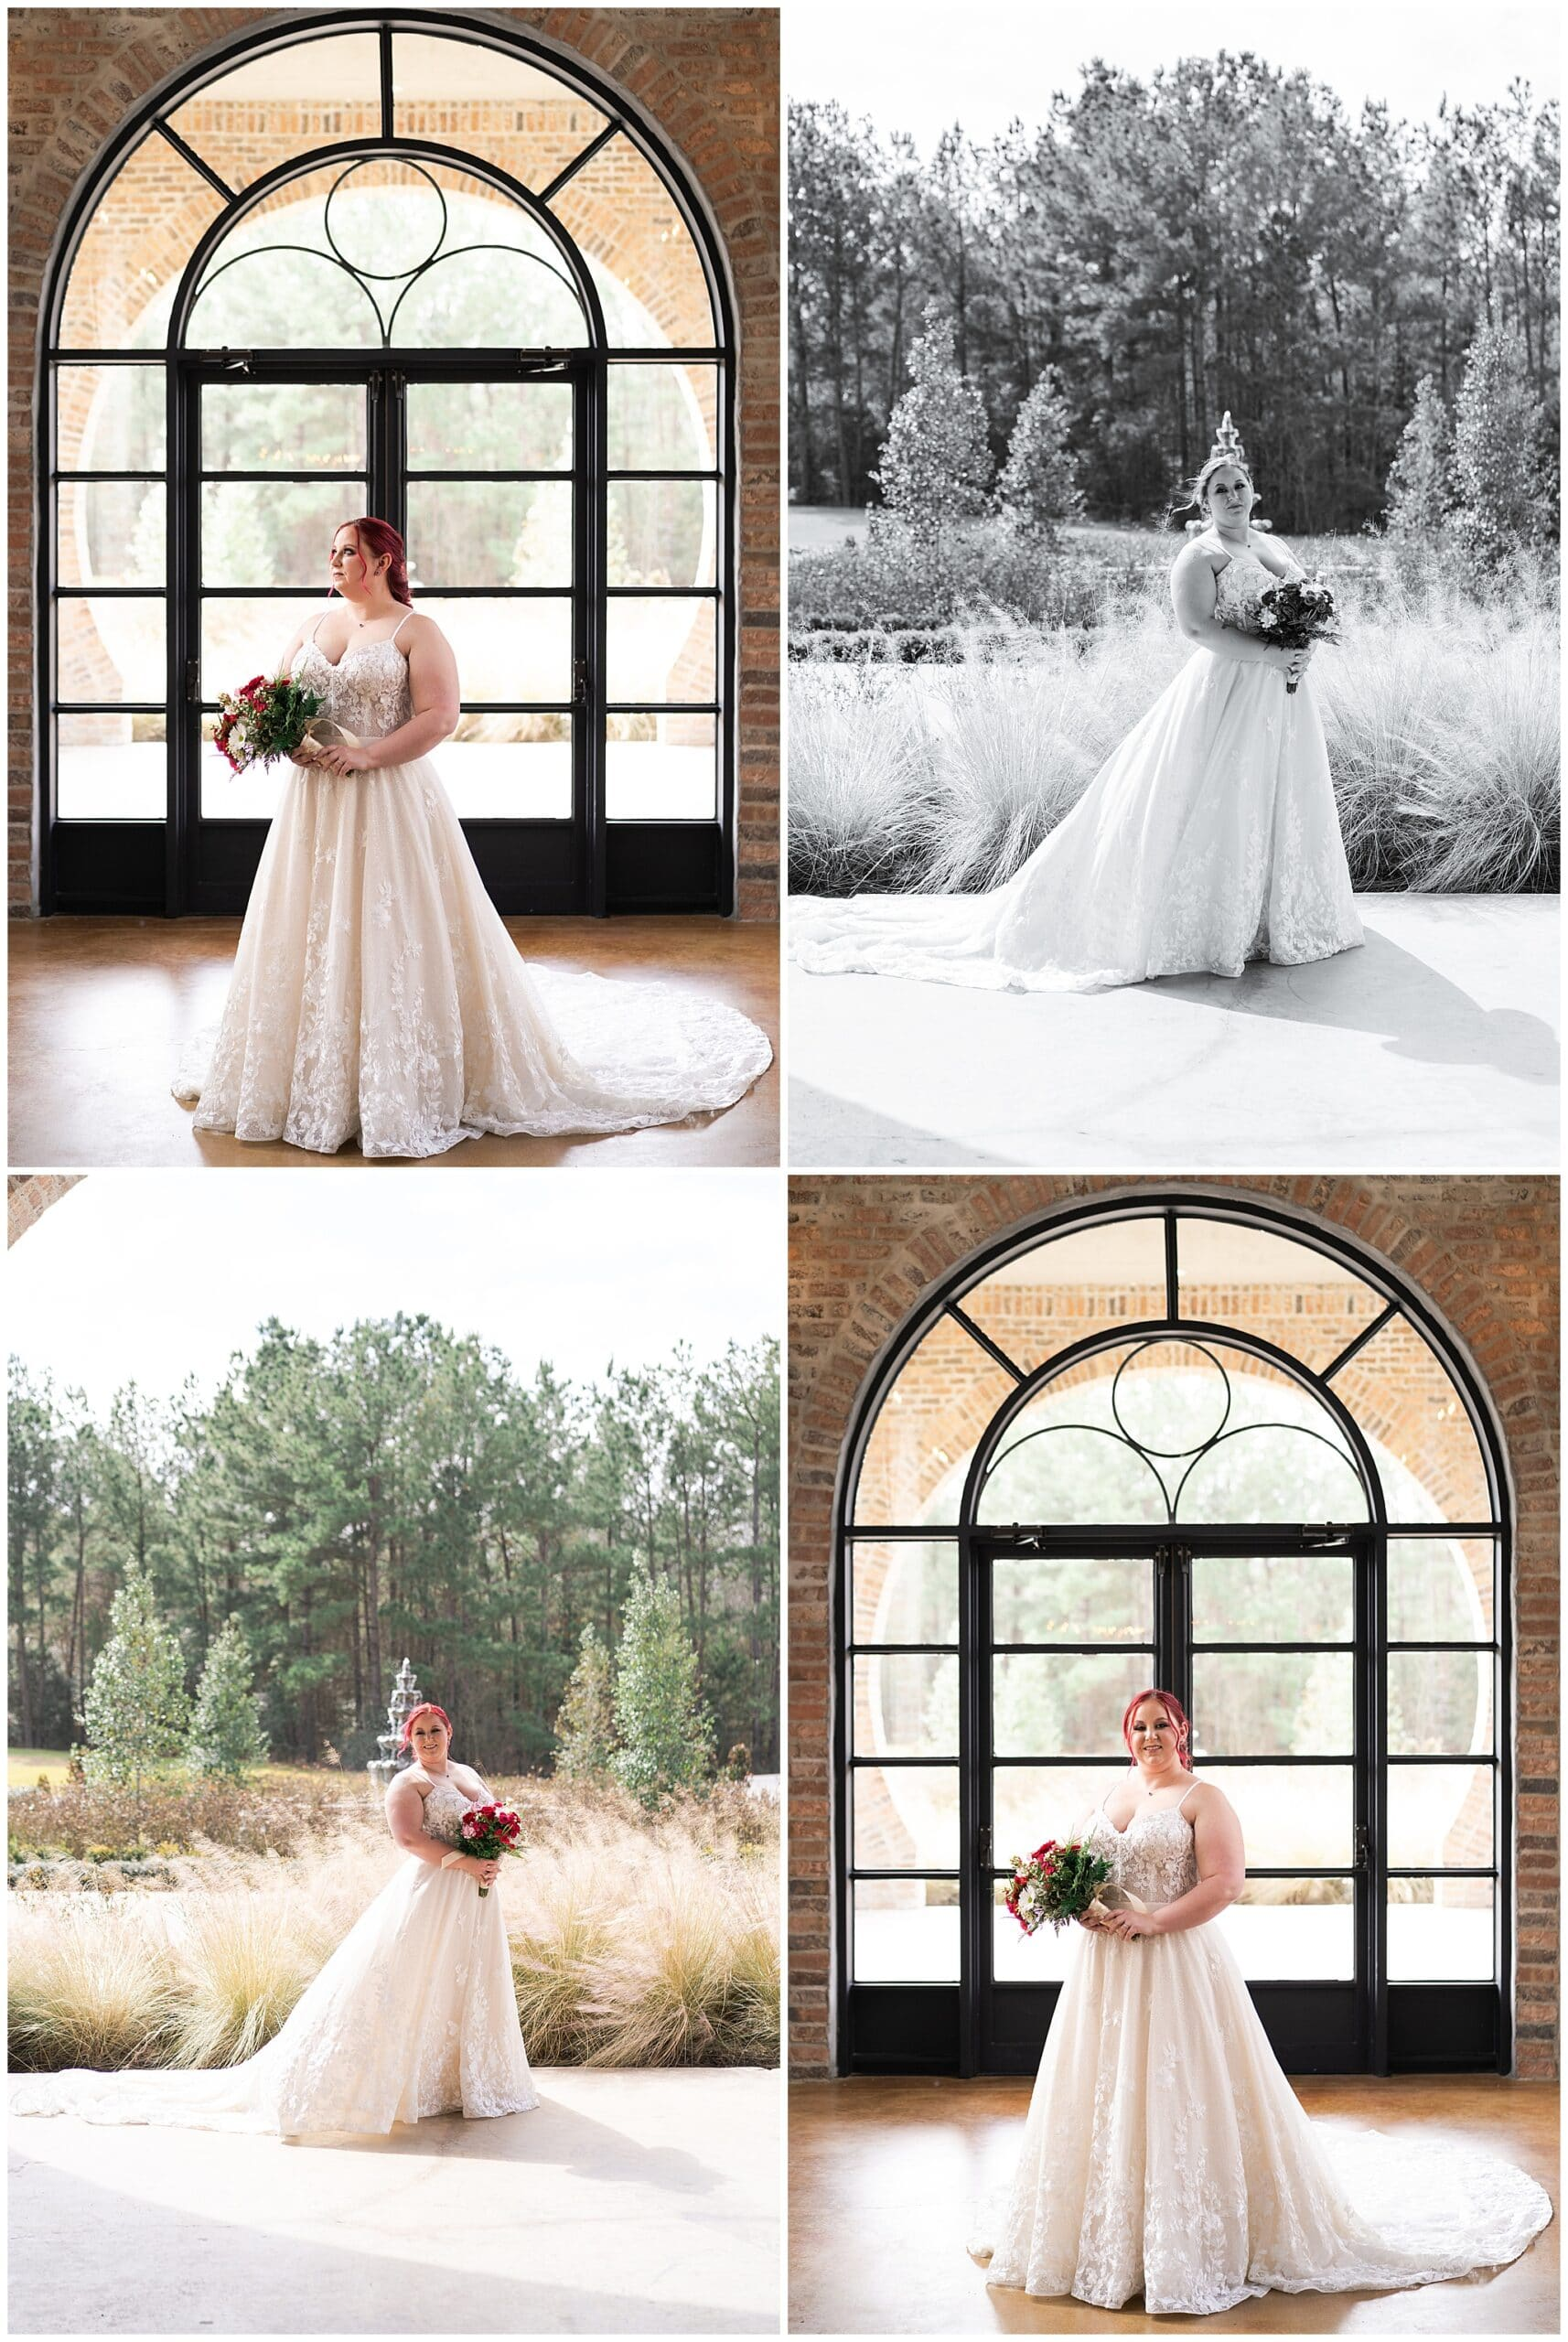 Iron Manor bridal session where the bride poses in the foyer captured by Swish and Click Photography in Houston Texas